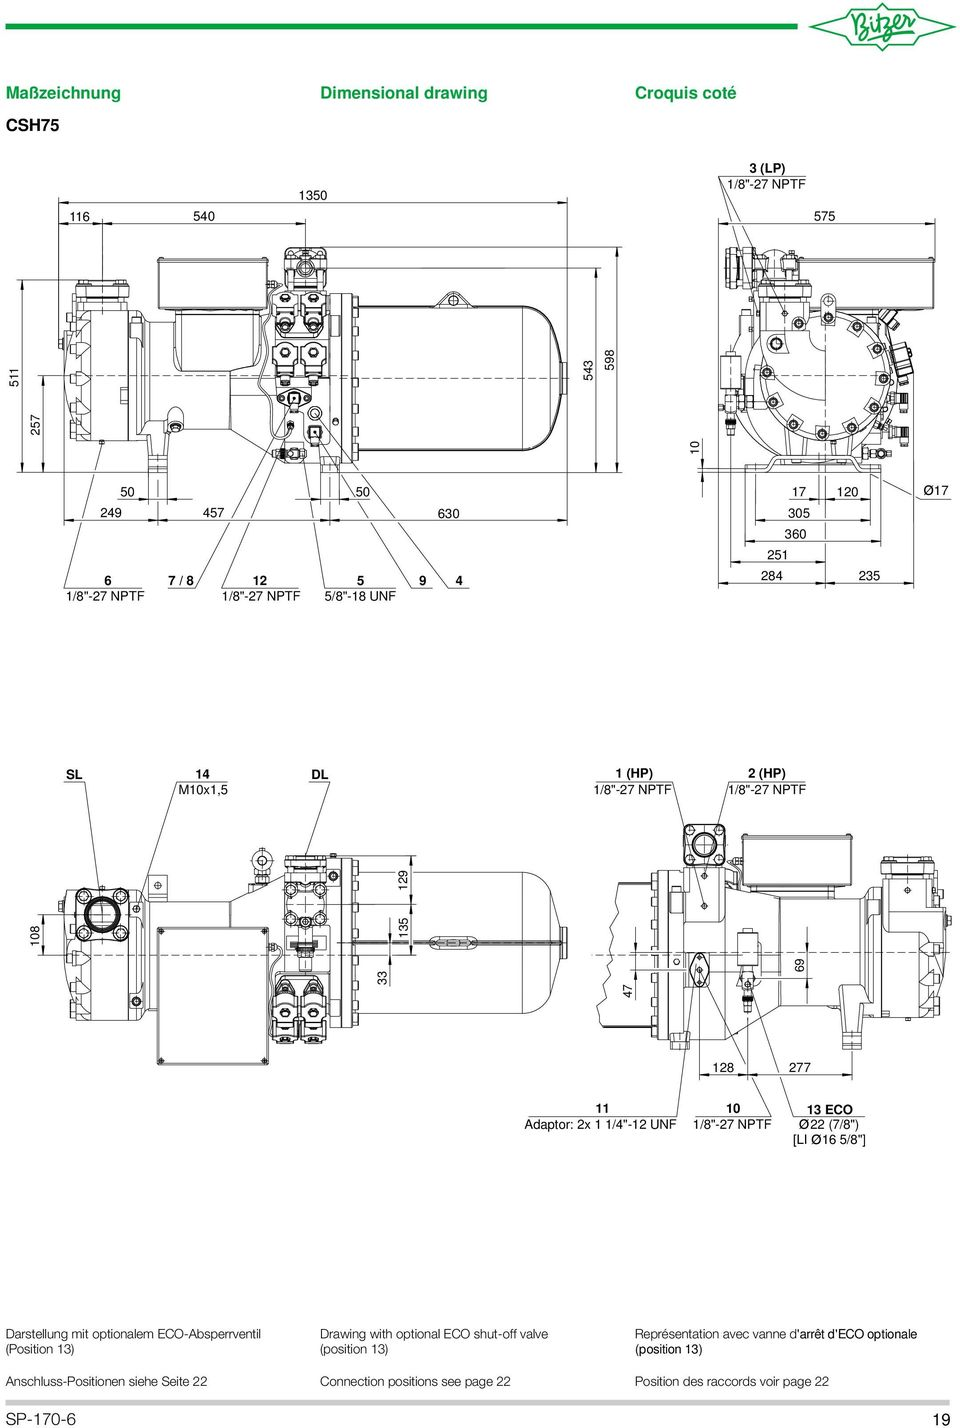 "(7/8"") [LI 6 5/8""] Darstellung mit optionalem ECO-Absperrventil (Position 3) Drawing with optional ECO shut-off valve (position 3)"